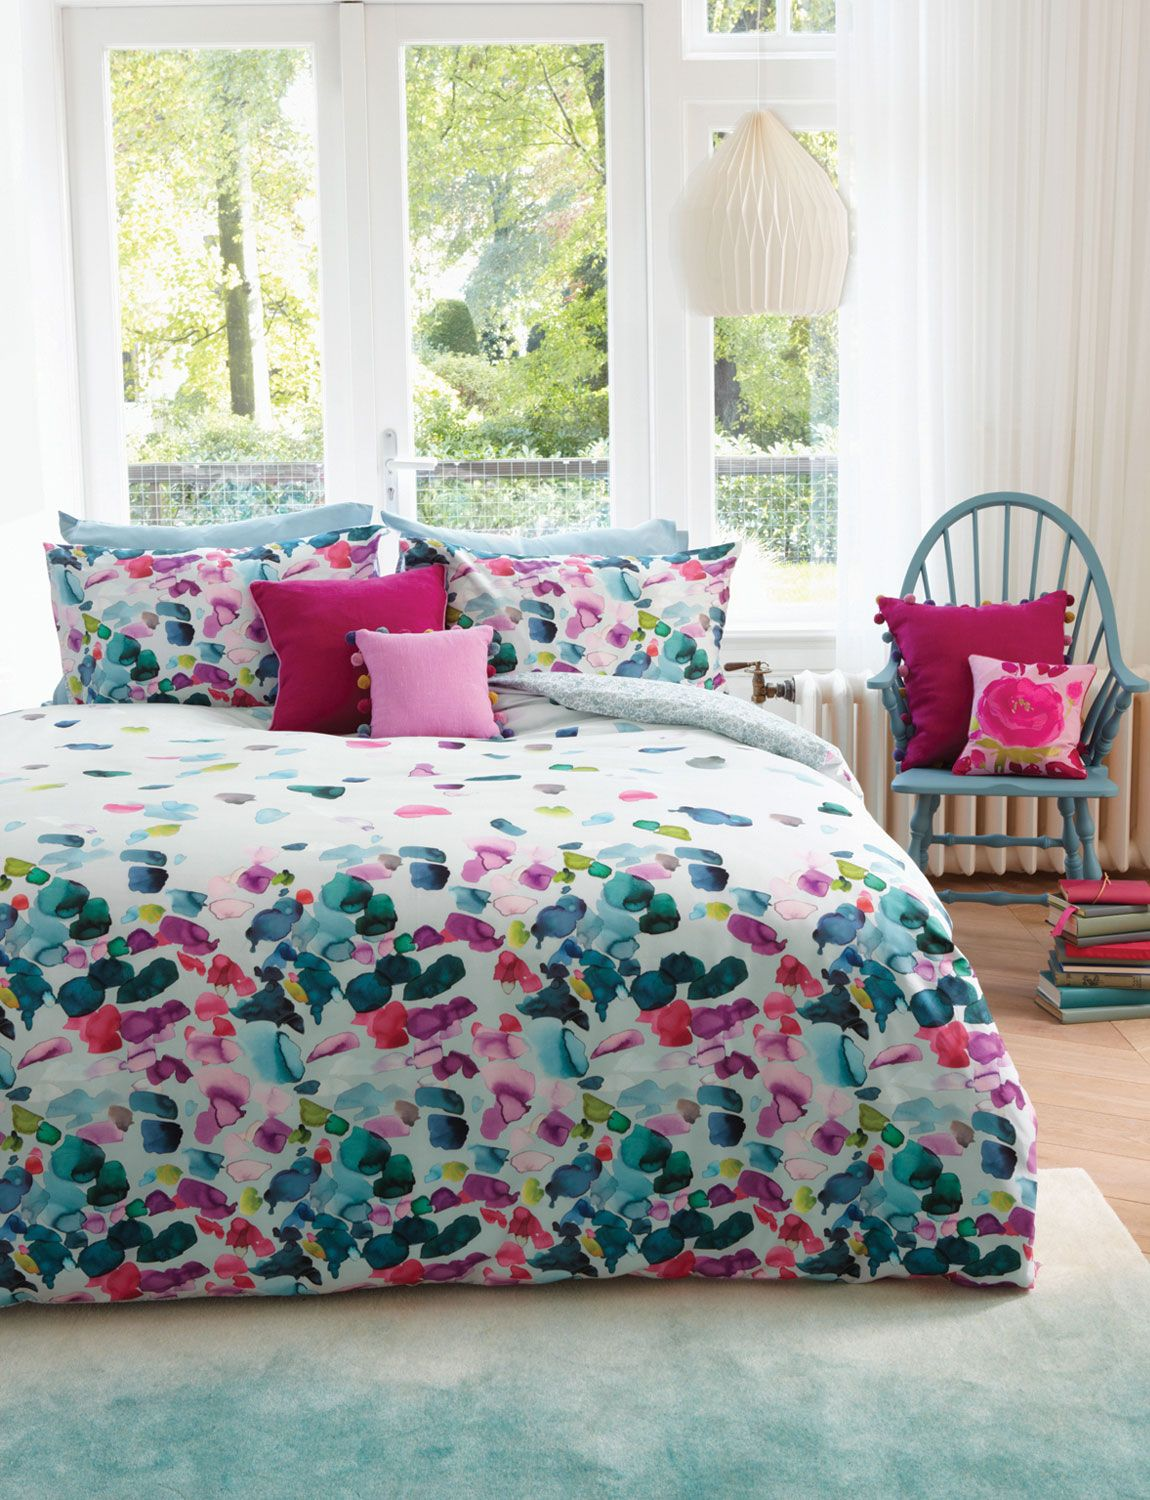 Bedroom Interior In Turquoise Pink And Raspberry Petals